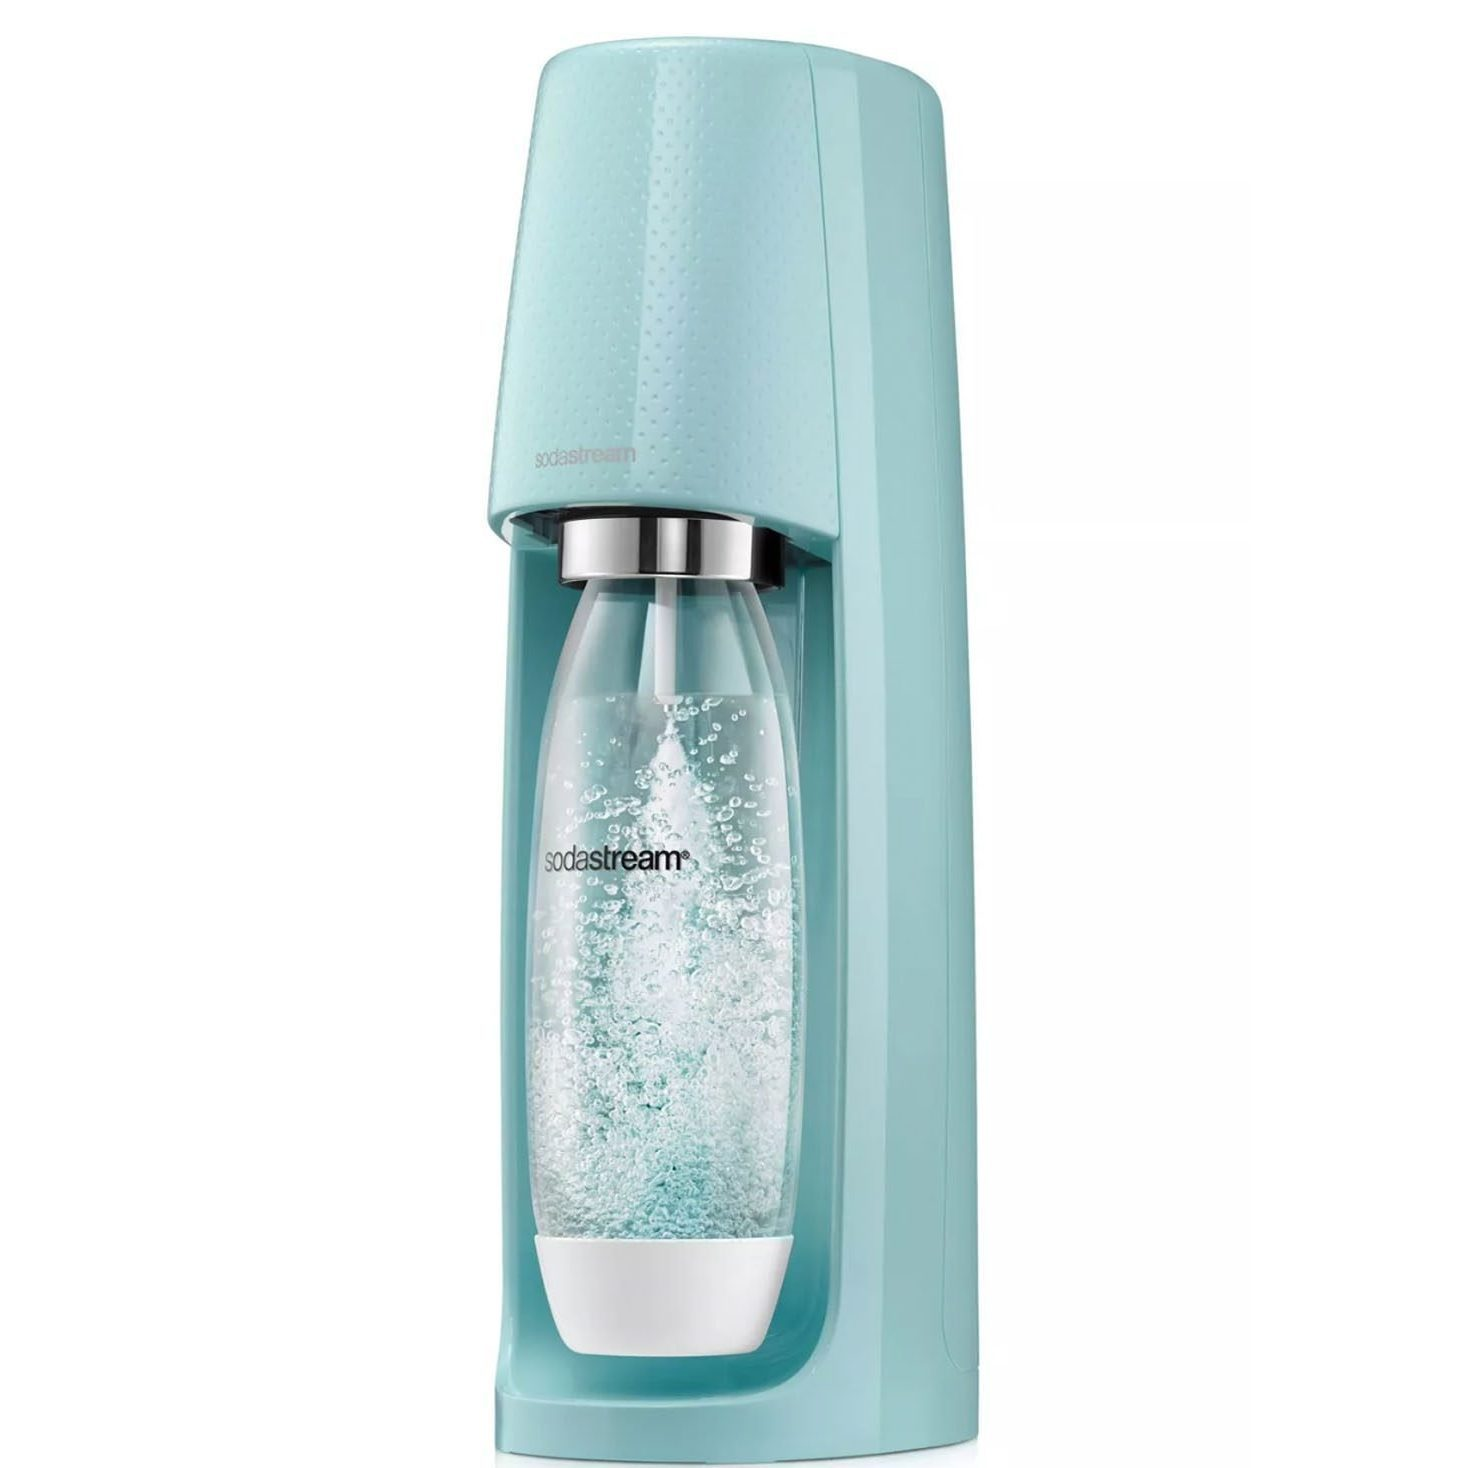 SodaStream Fizzi Soda Maker with CO2 Carbonator and 2 Extra Bottles